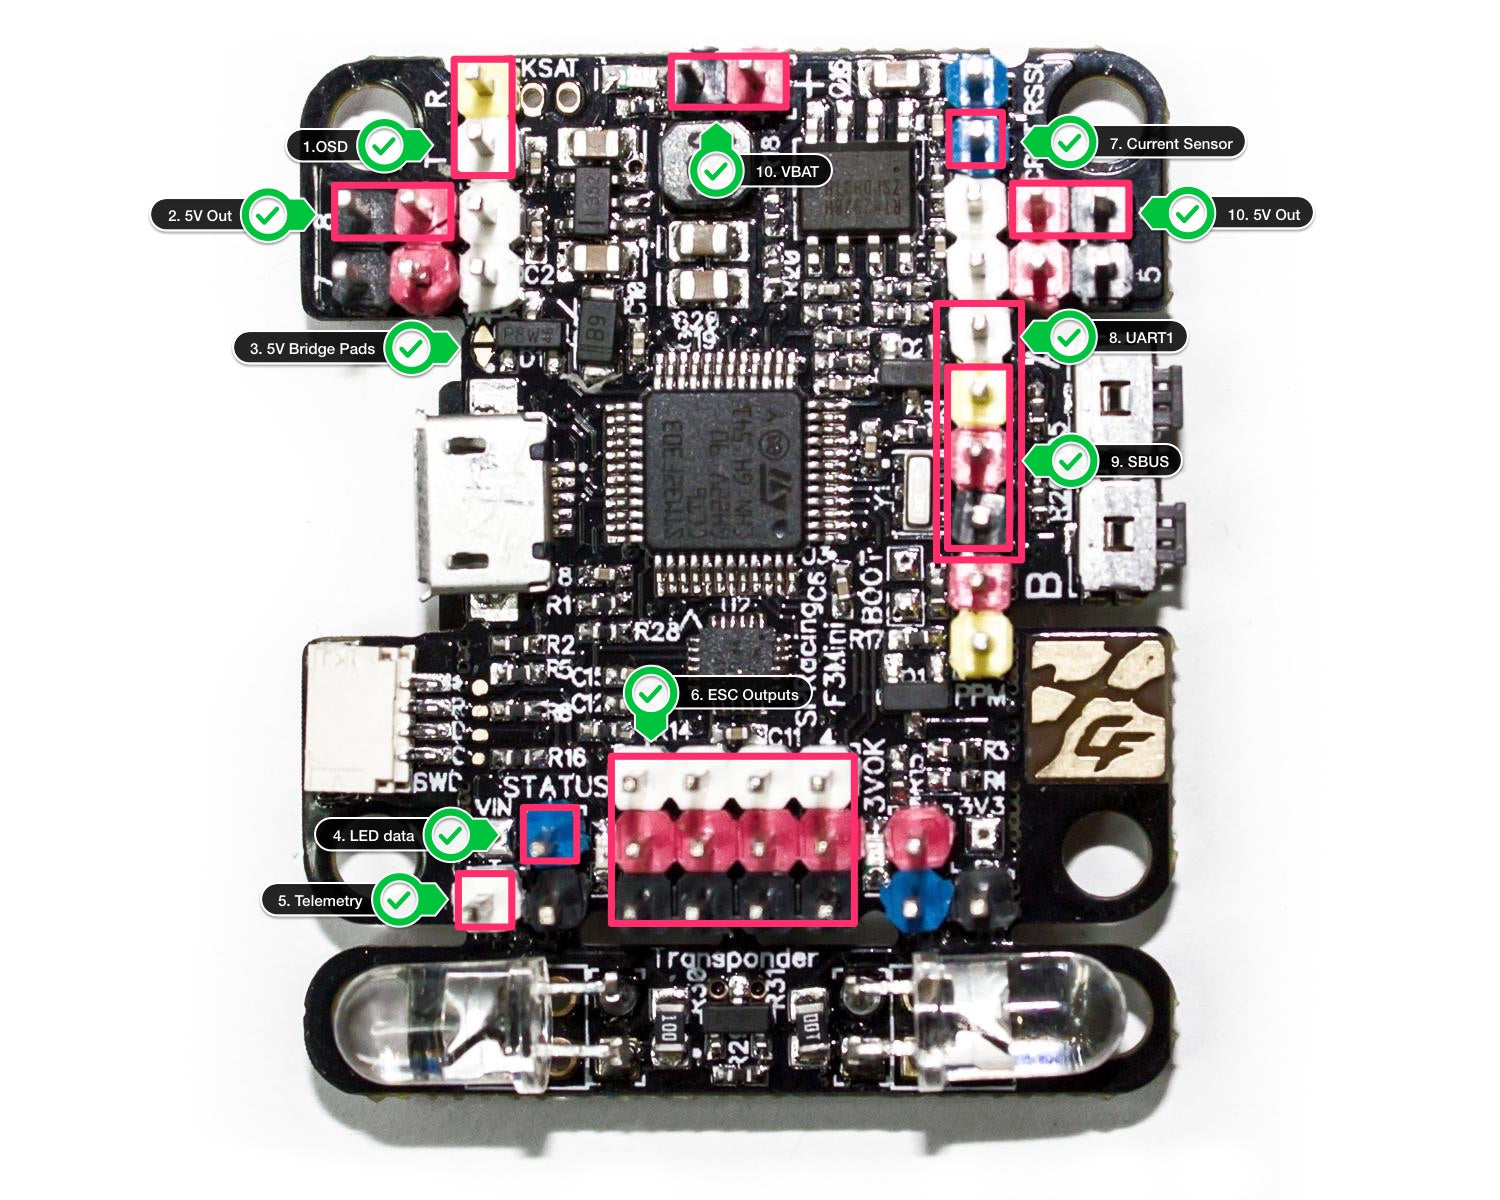 Annotated diagram of the SPRacingF3Mini flight controller